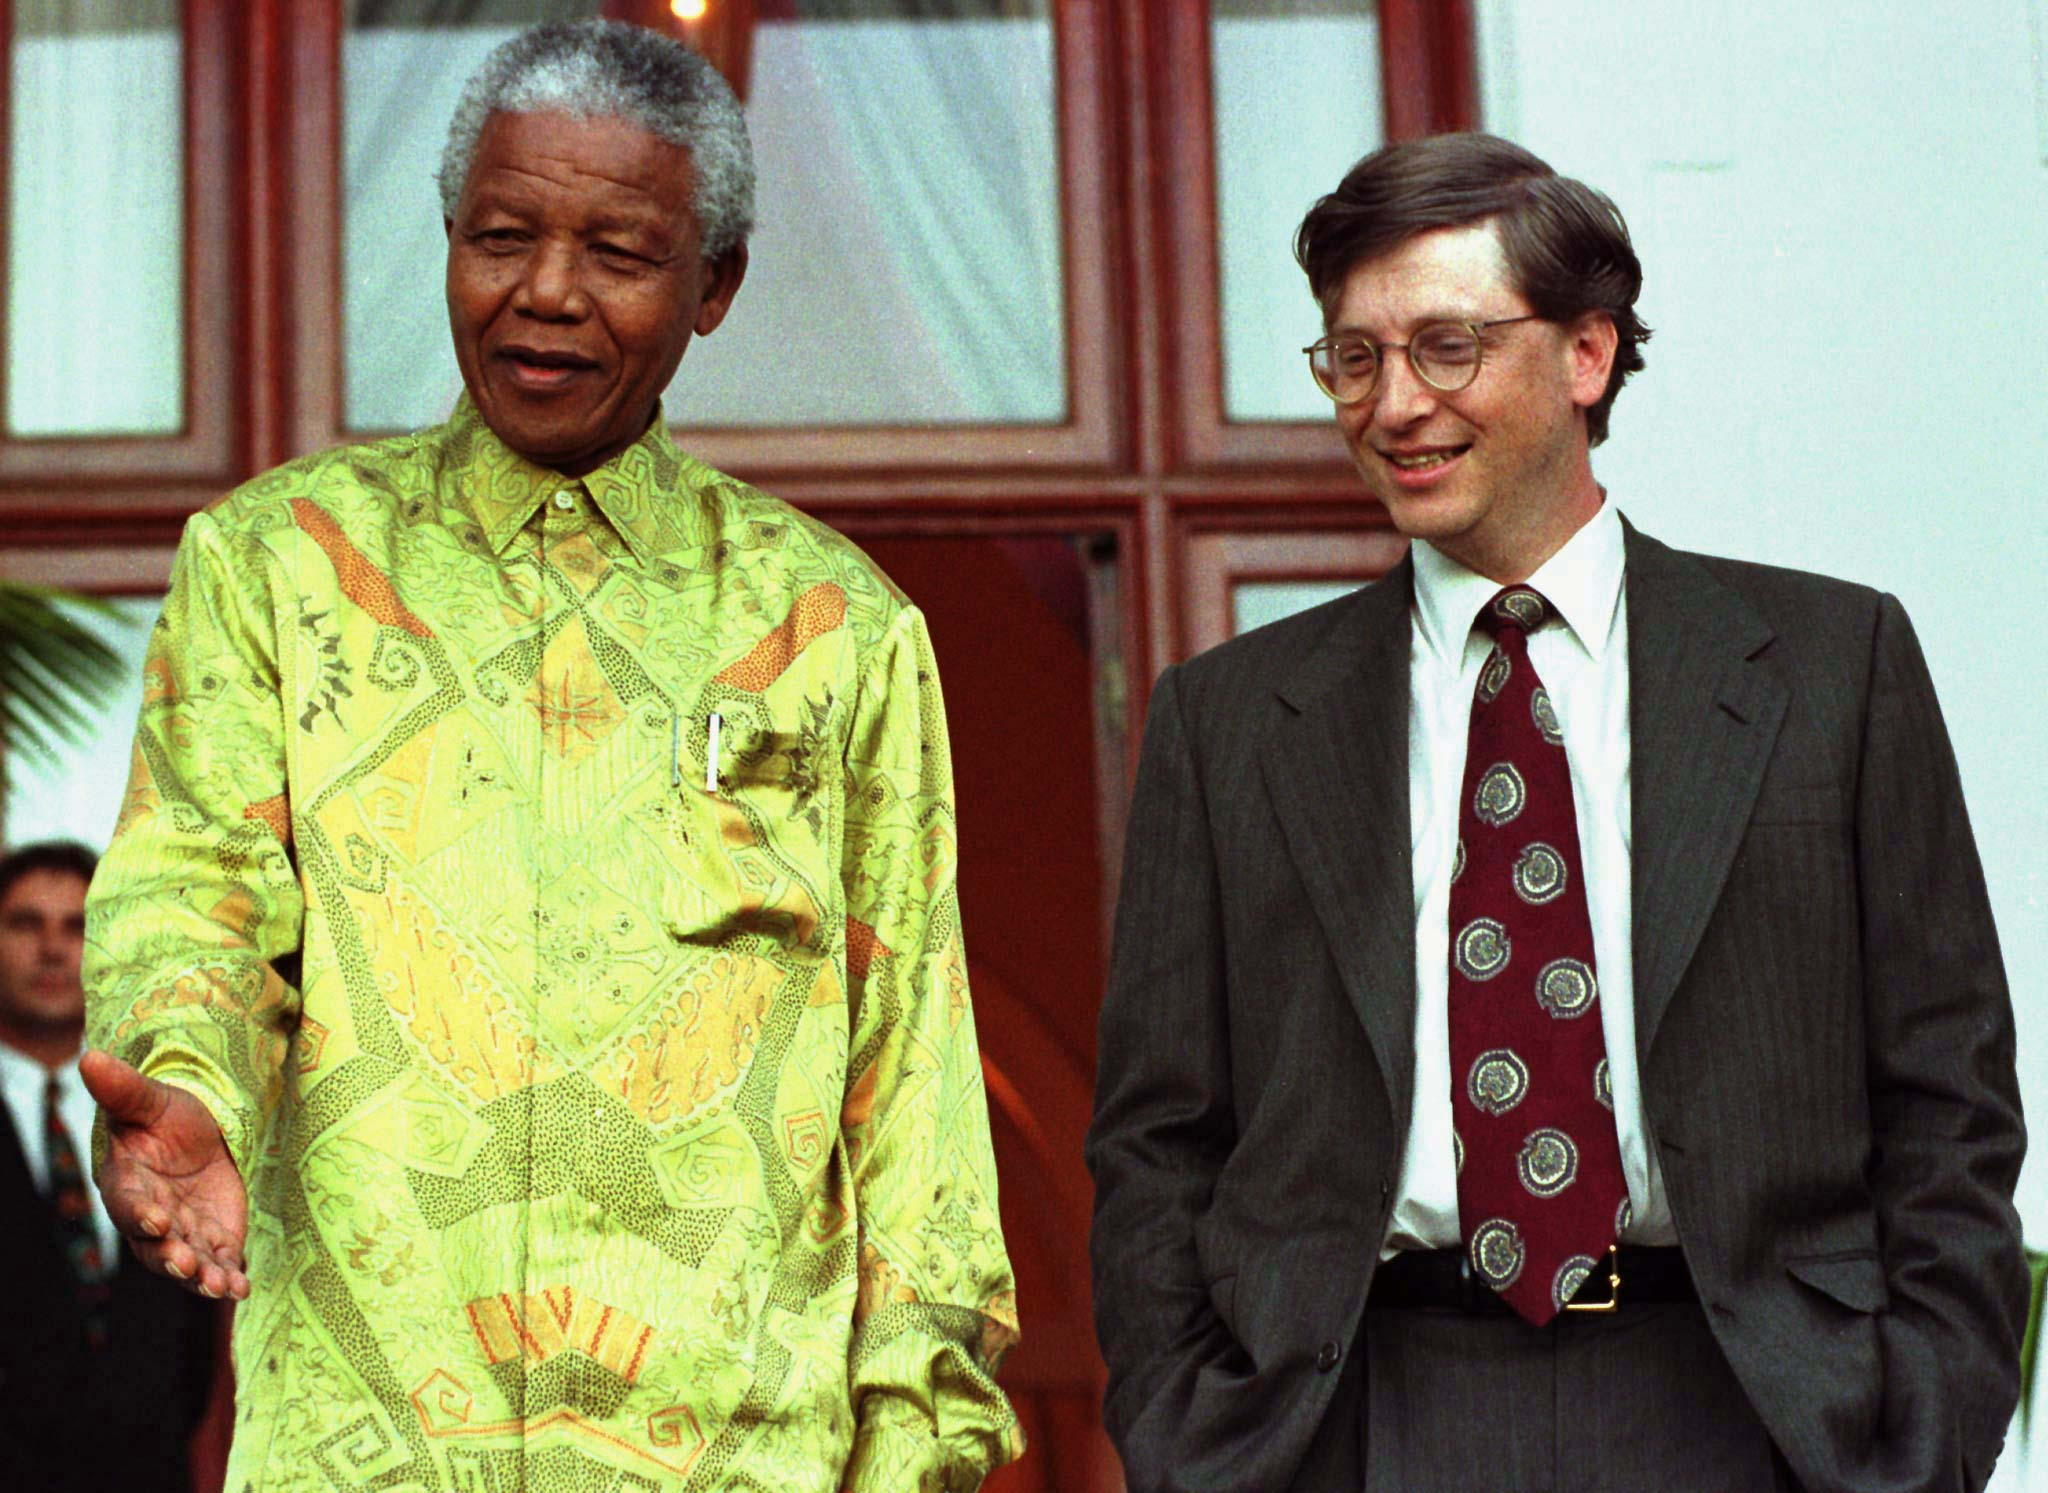 Nelson Mandela and Bill Gates in 1997